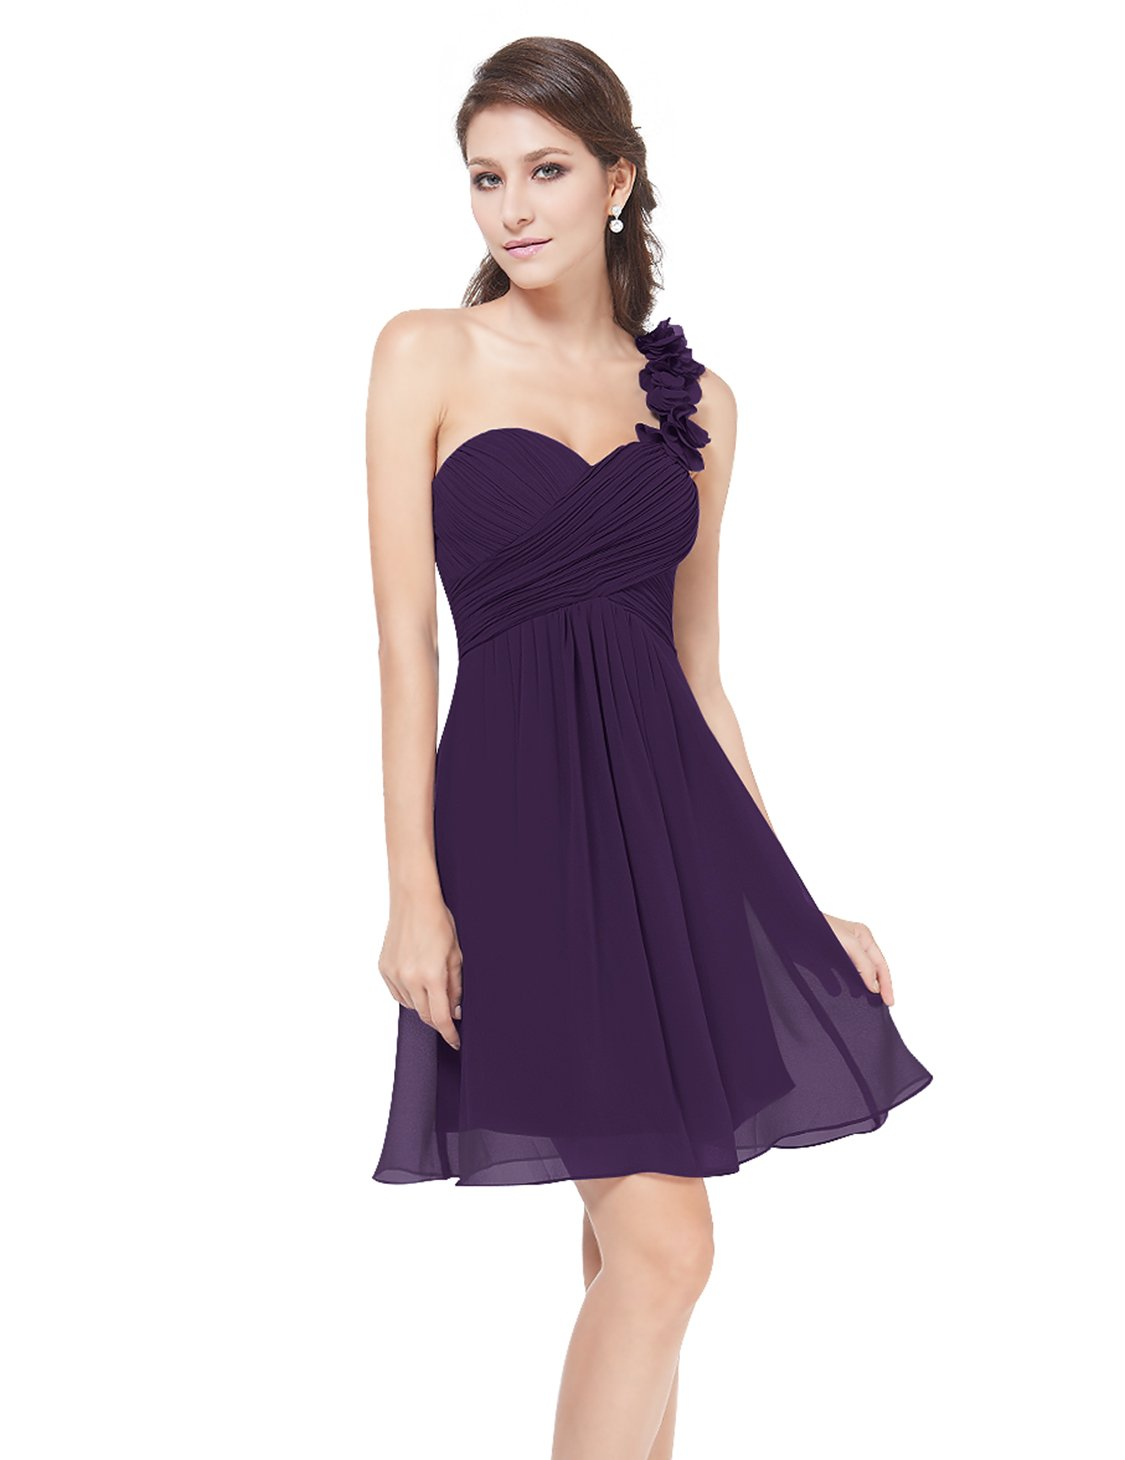 Ever-Pretty Juniors One Shoulder Knee Length Bridesmaids Dress 6 US Purple by Ever-Pretty